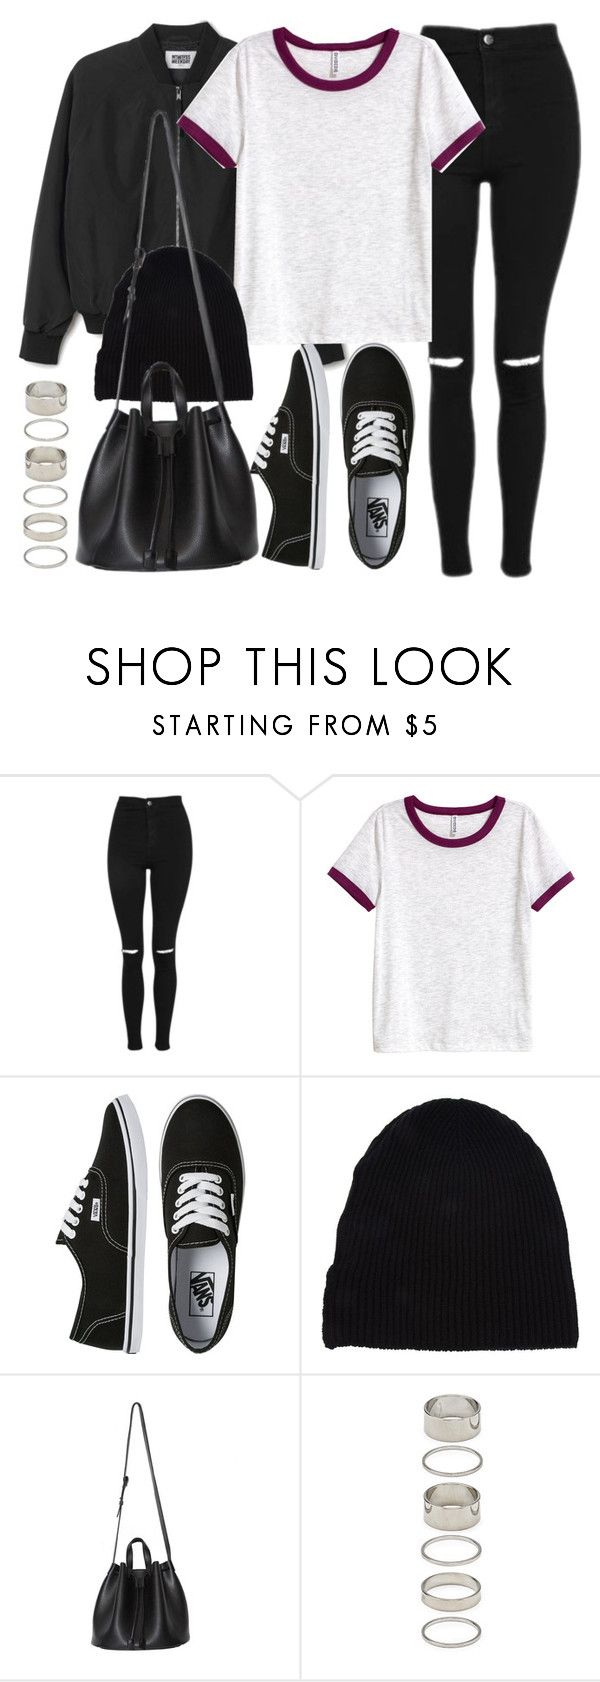 """""""Style #11639"""" by vany-alvarado ❤ liked on Polyvore featuring Topshop, H&M, Vans, Yves Saint Laurent and Forever 21"""